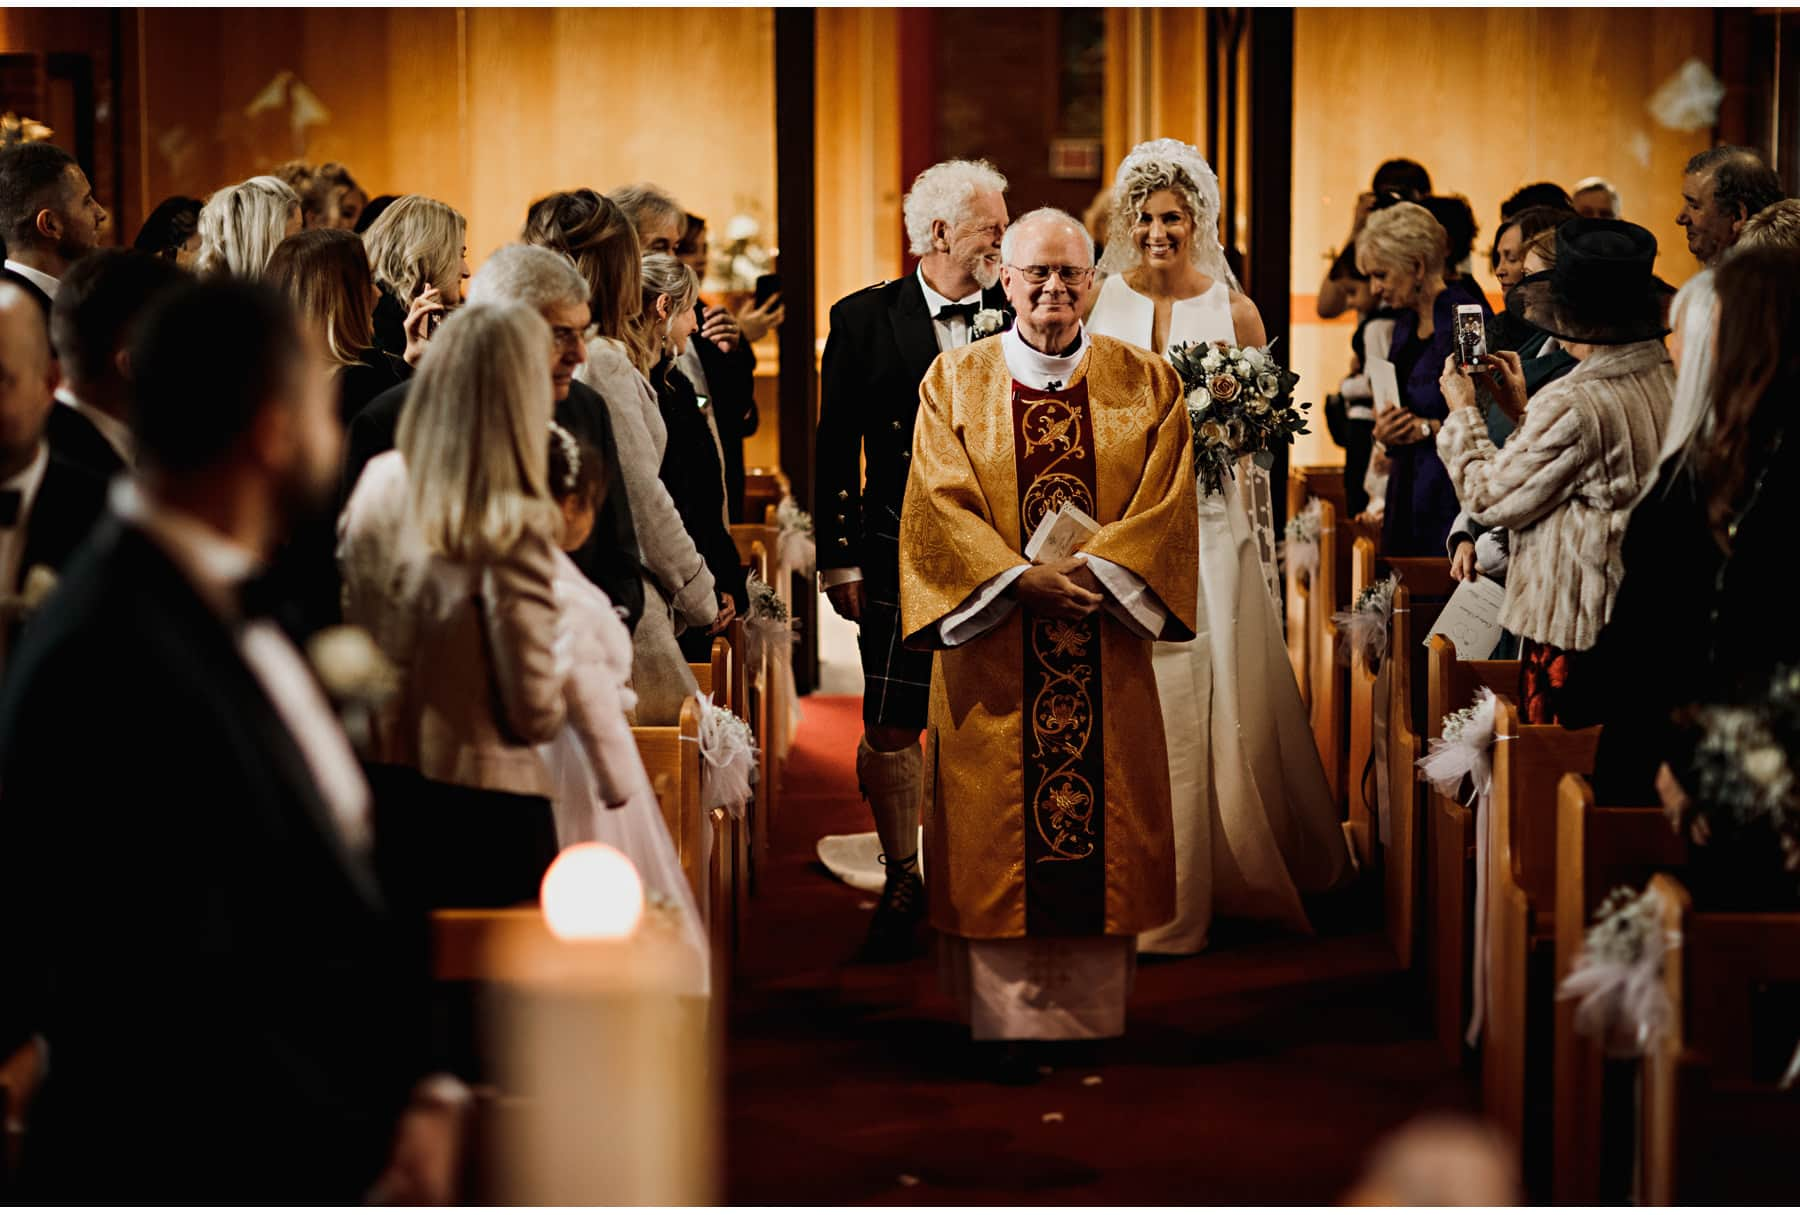 The bride walking into the church with her dad